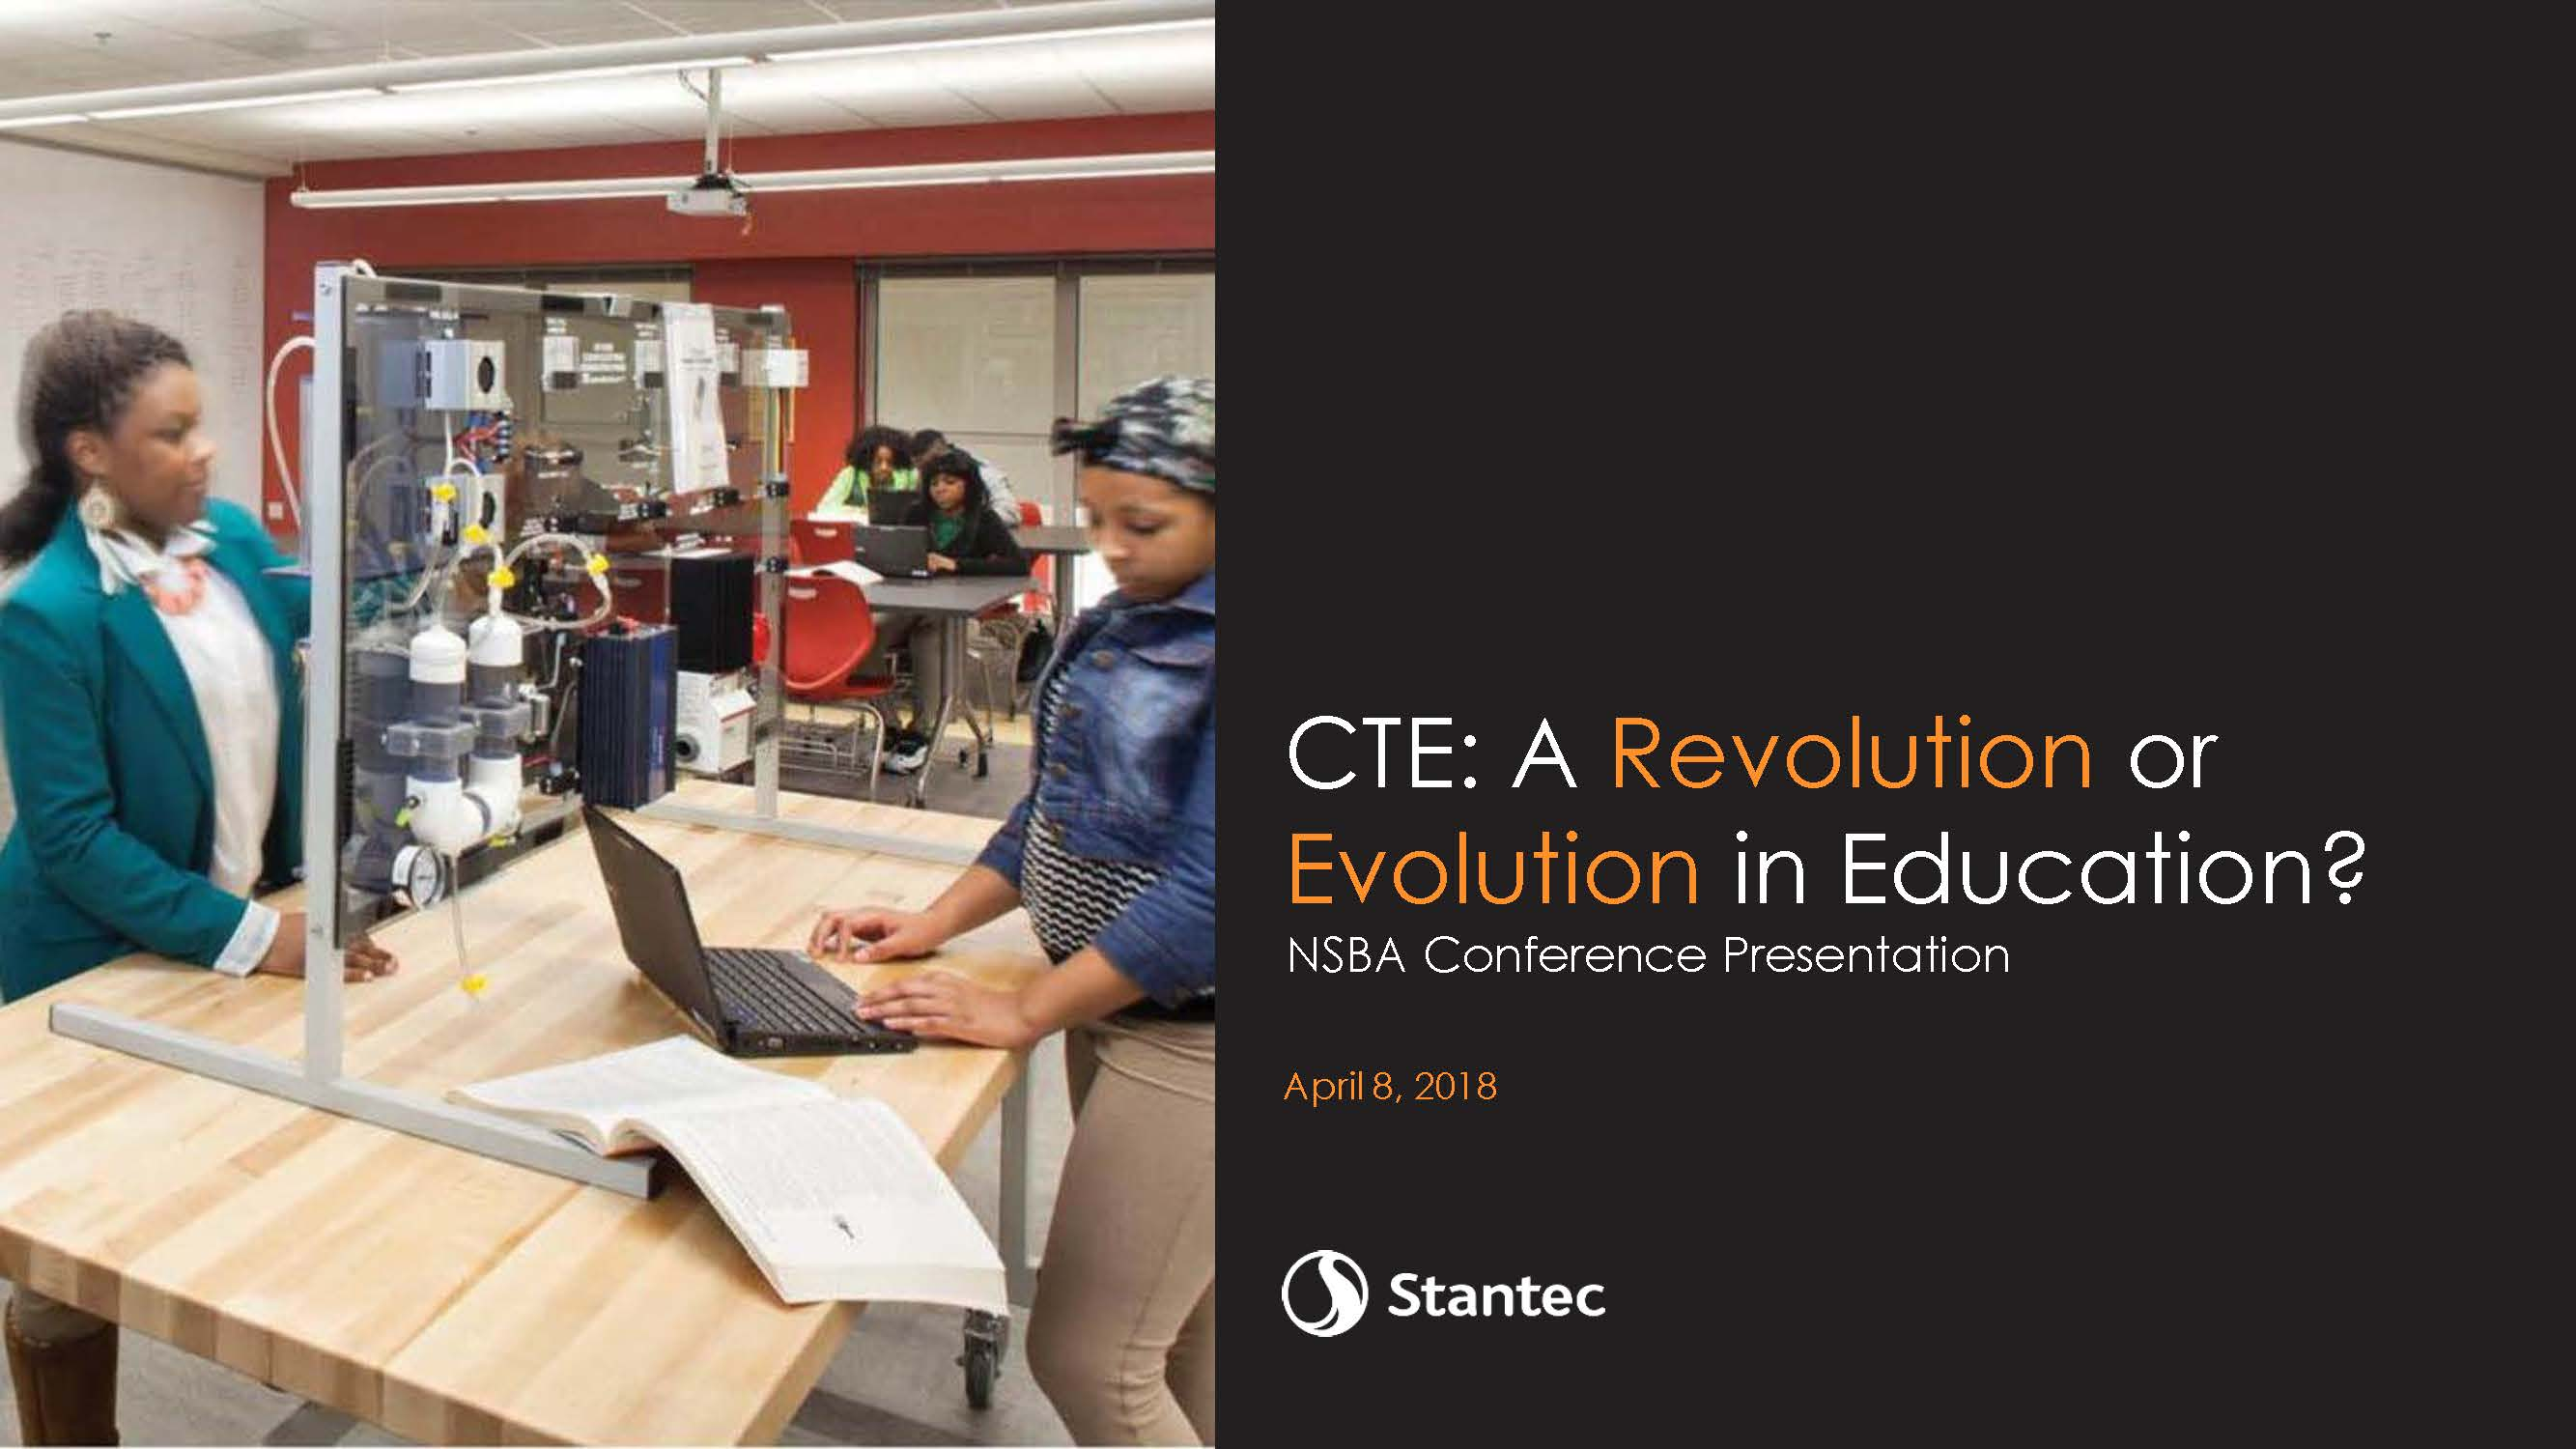 Download your free copy of our NSBA 2018 presentation on the next generation of CTE spaces